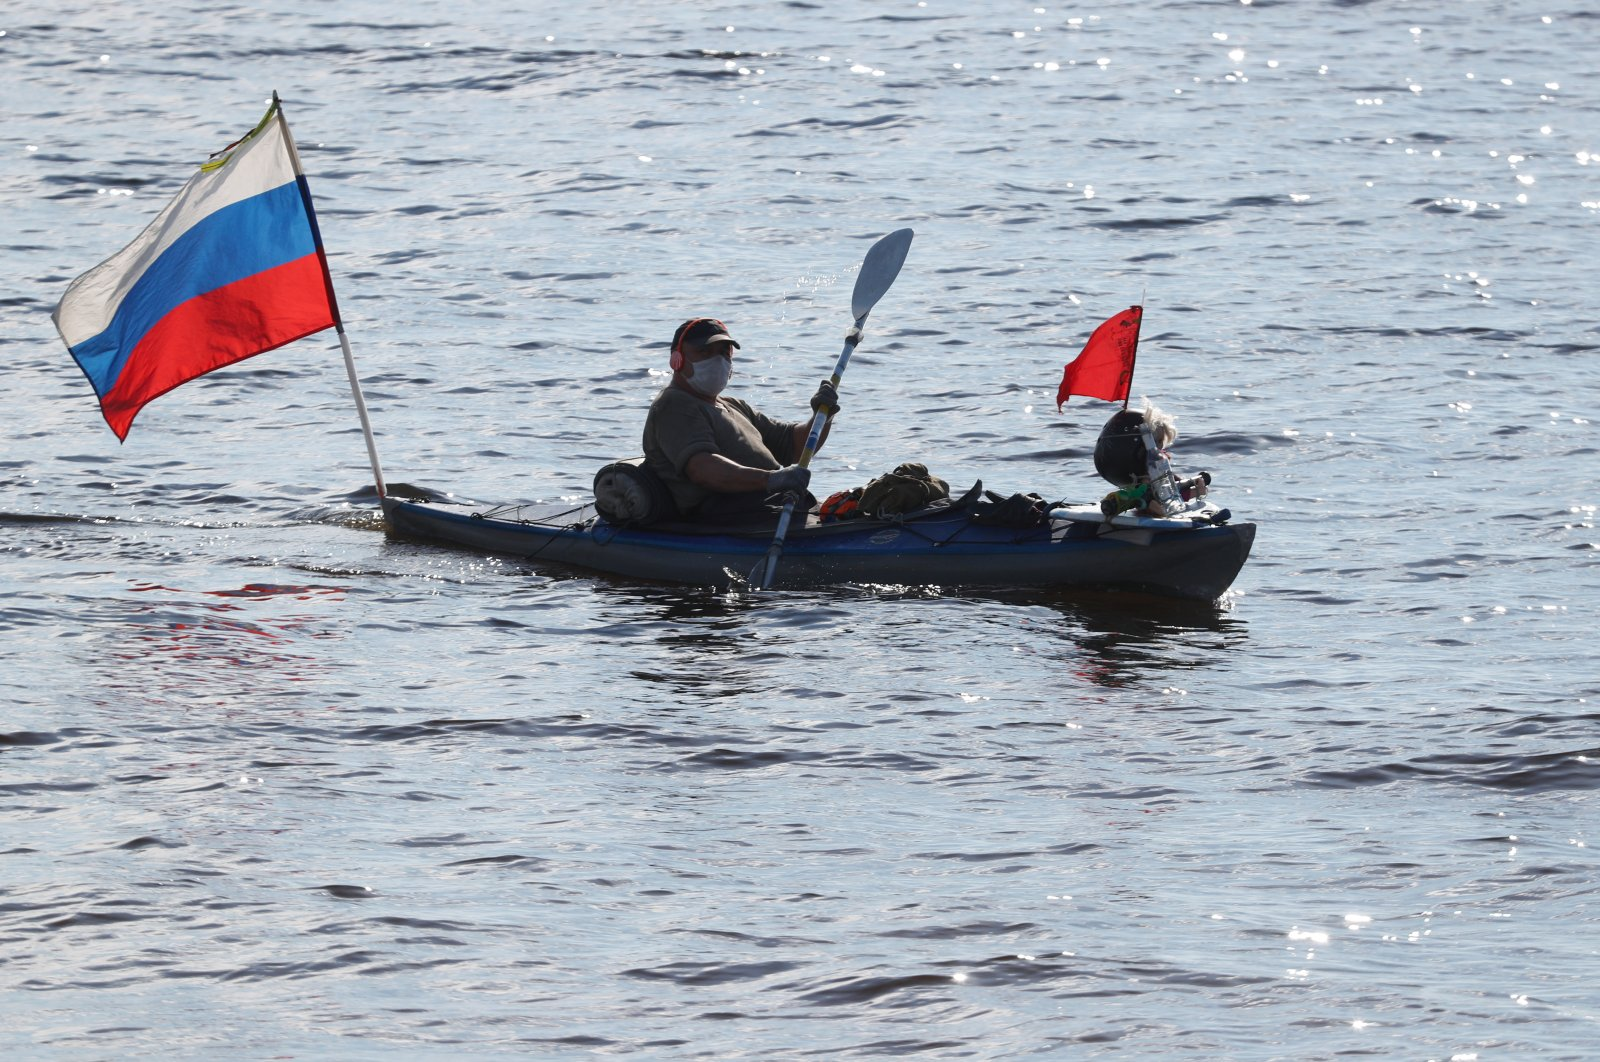 A man wearing a protective face mask paddles a canoe in the waters of the Gulf of Finland amid the outbreak of the coronavirus disease in St. Petersburg, Russia May 27, 2020. (Reuters Photo)